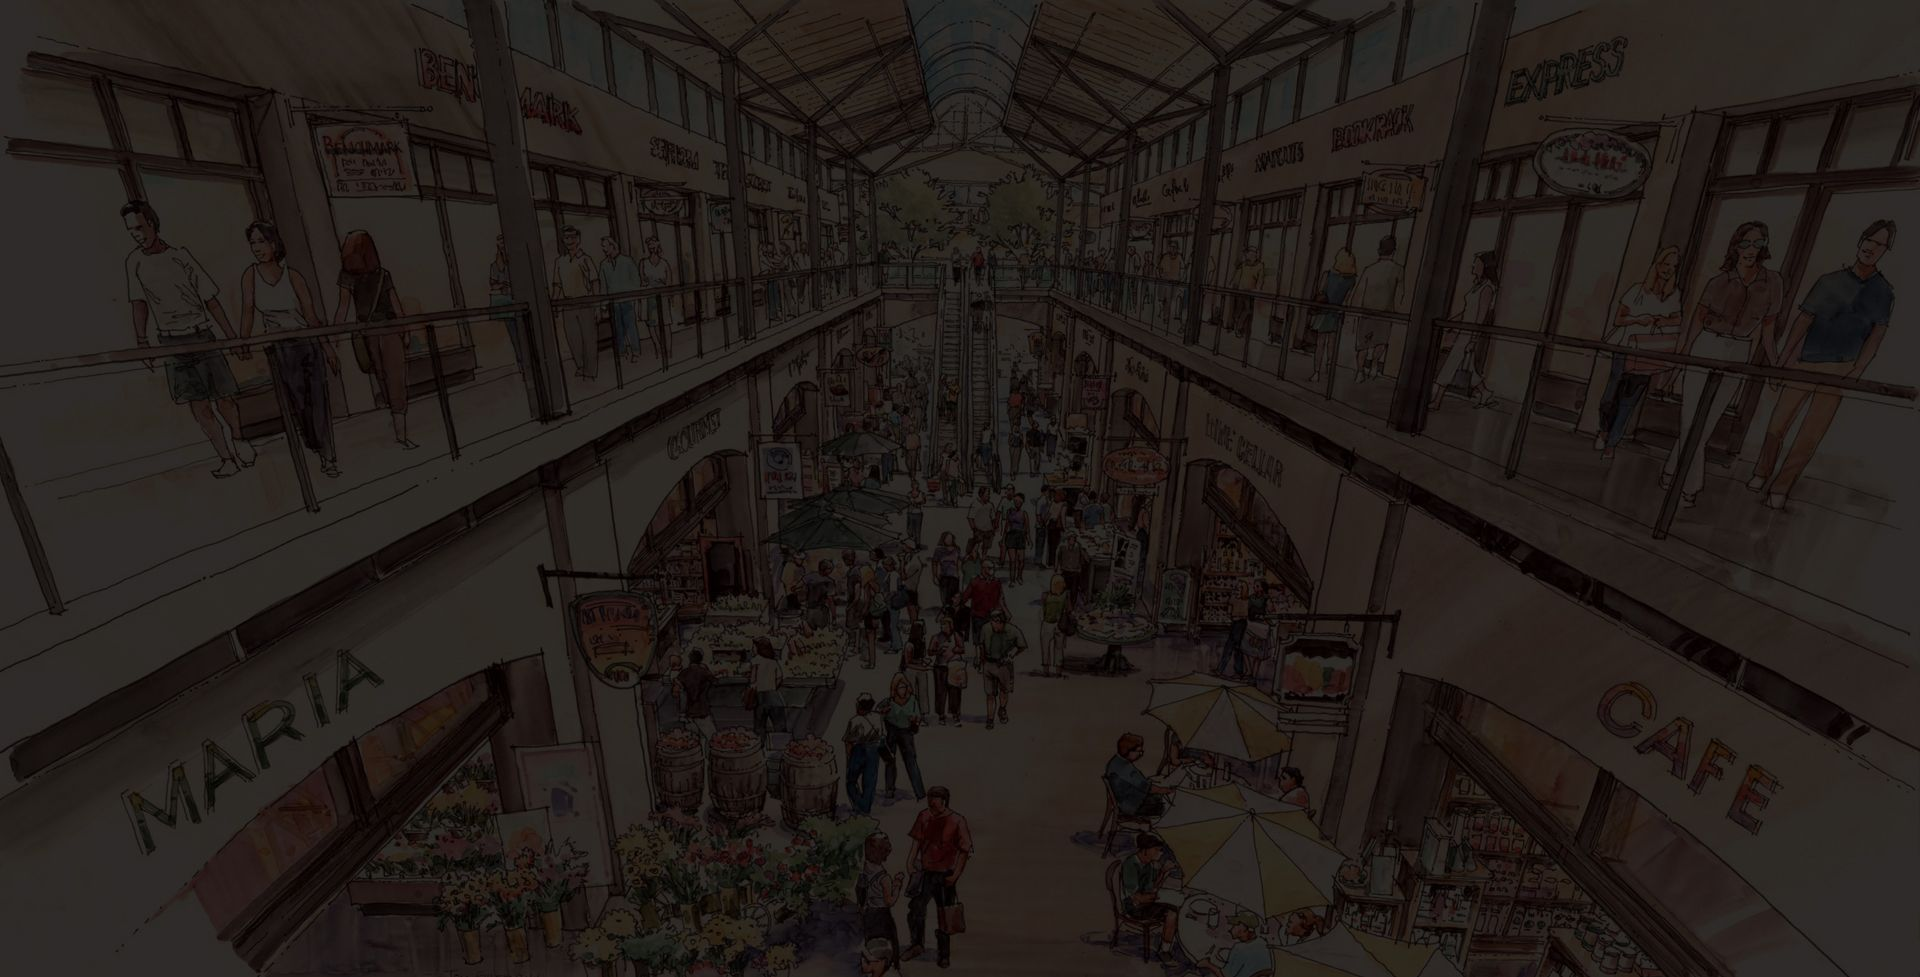 Retail store management software pos erp crm solution for Multinational architectural firms in bangalore